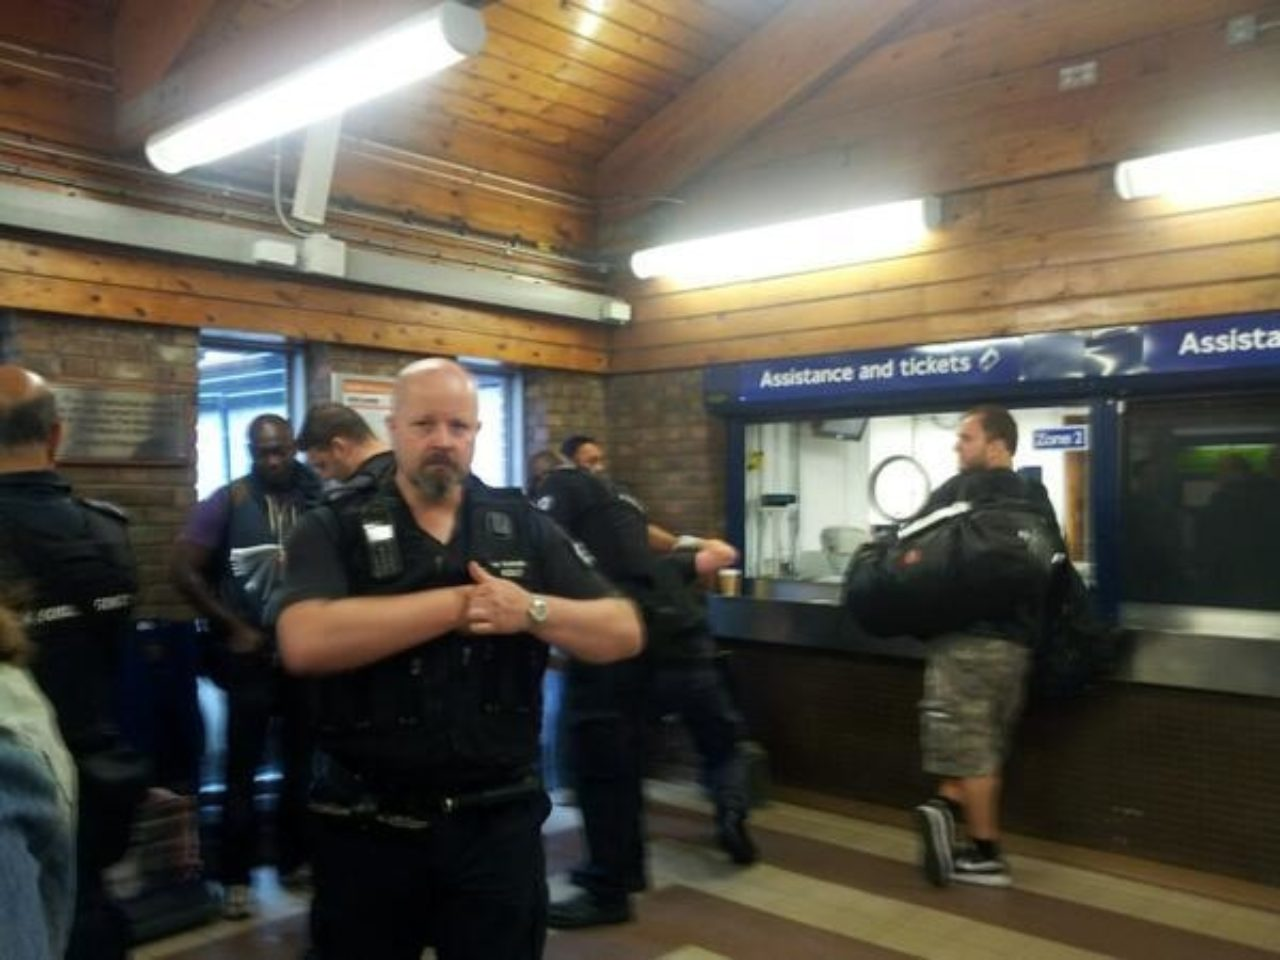 An image of an immigration raid at a London tube station